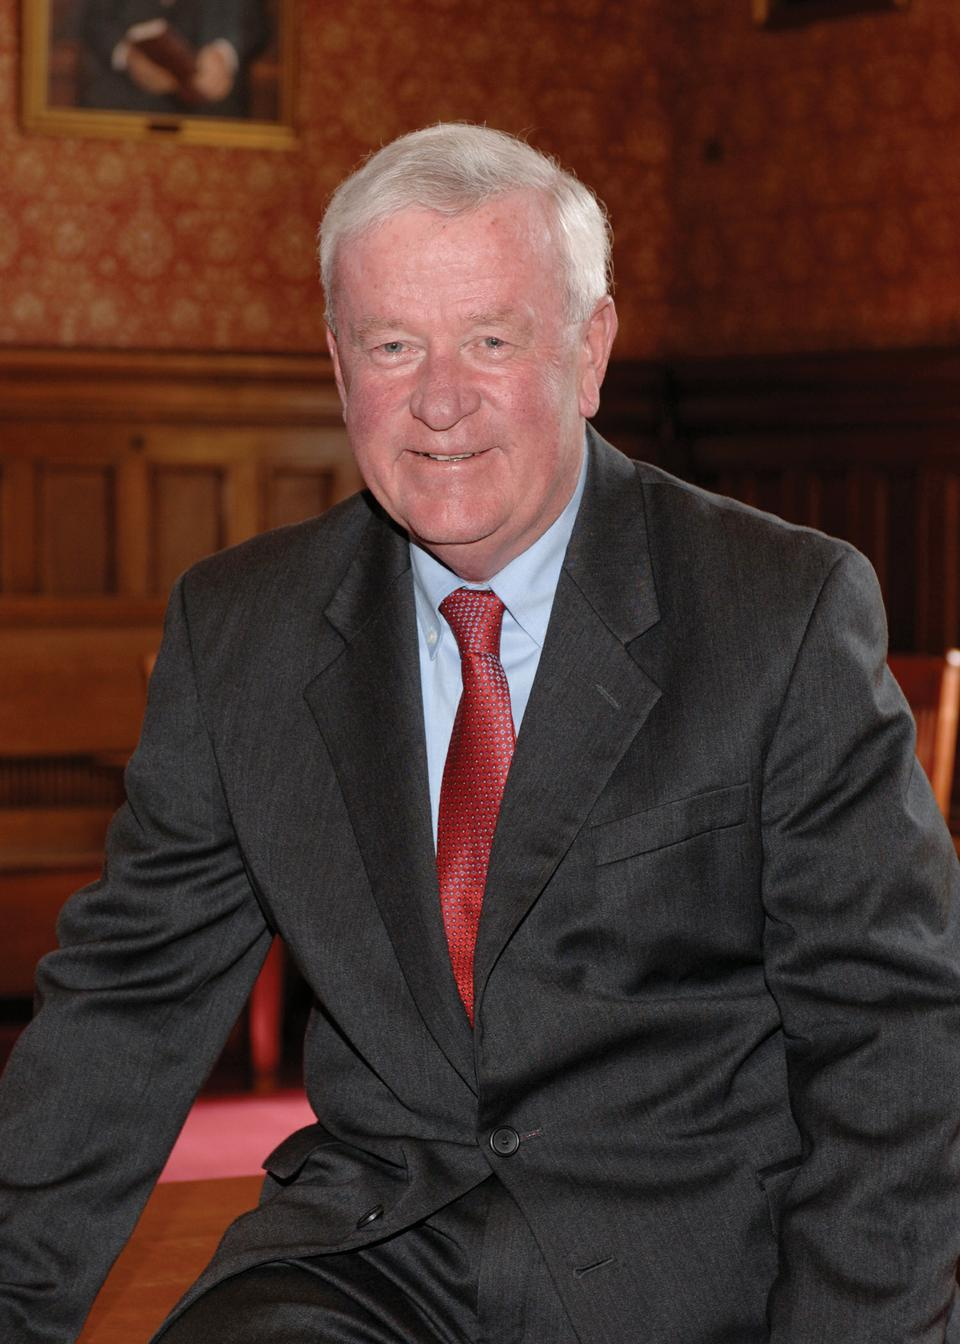 Robert W. Healy, who has served as Cambridge city manager for more than 30 years, leaves a long legacy of leadership behind.